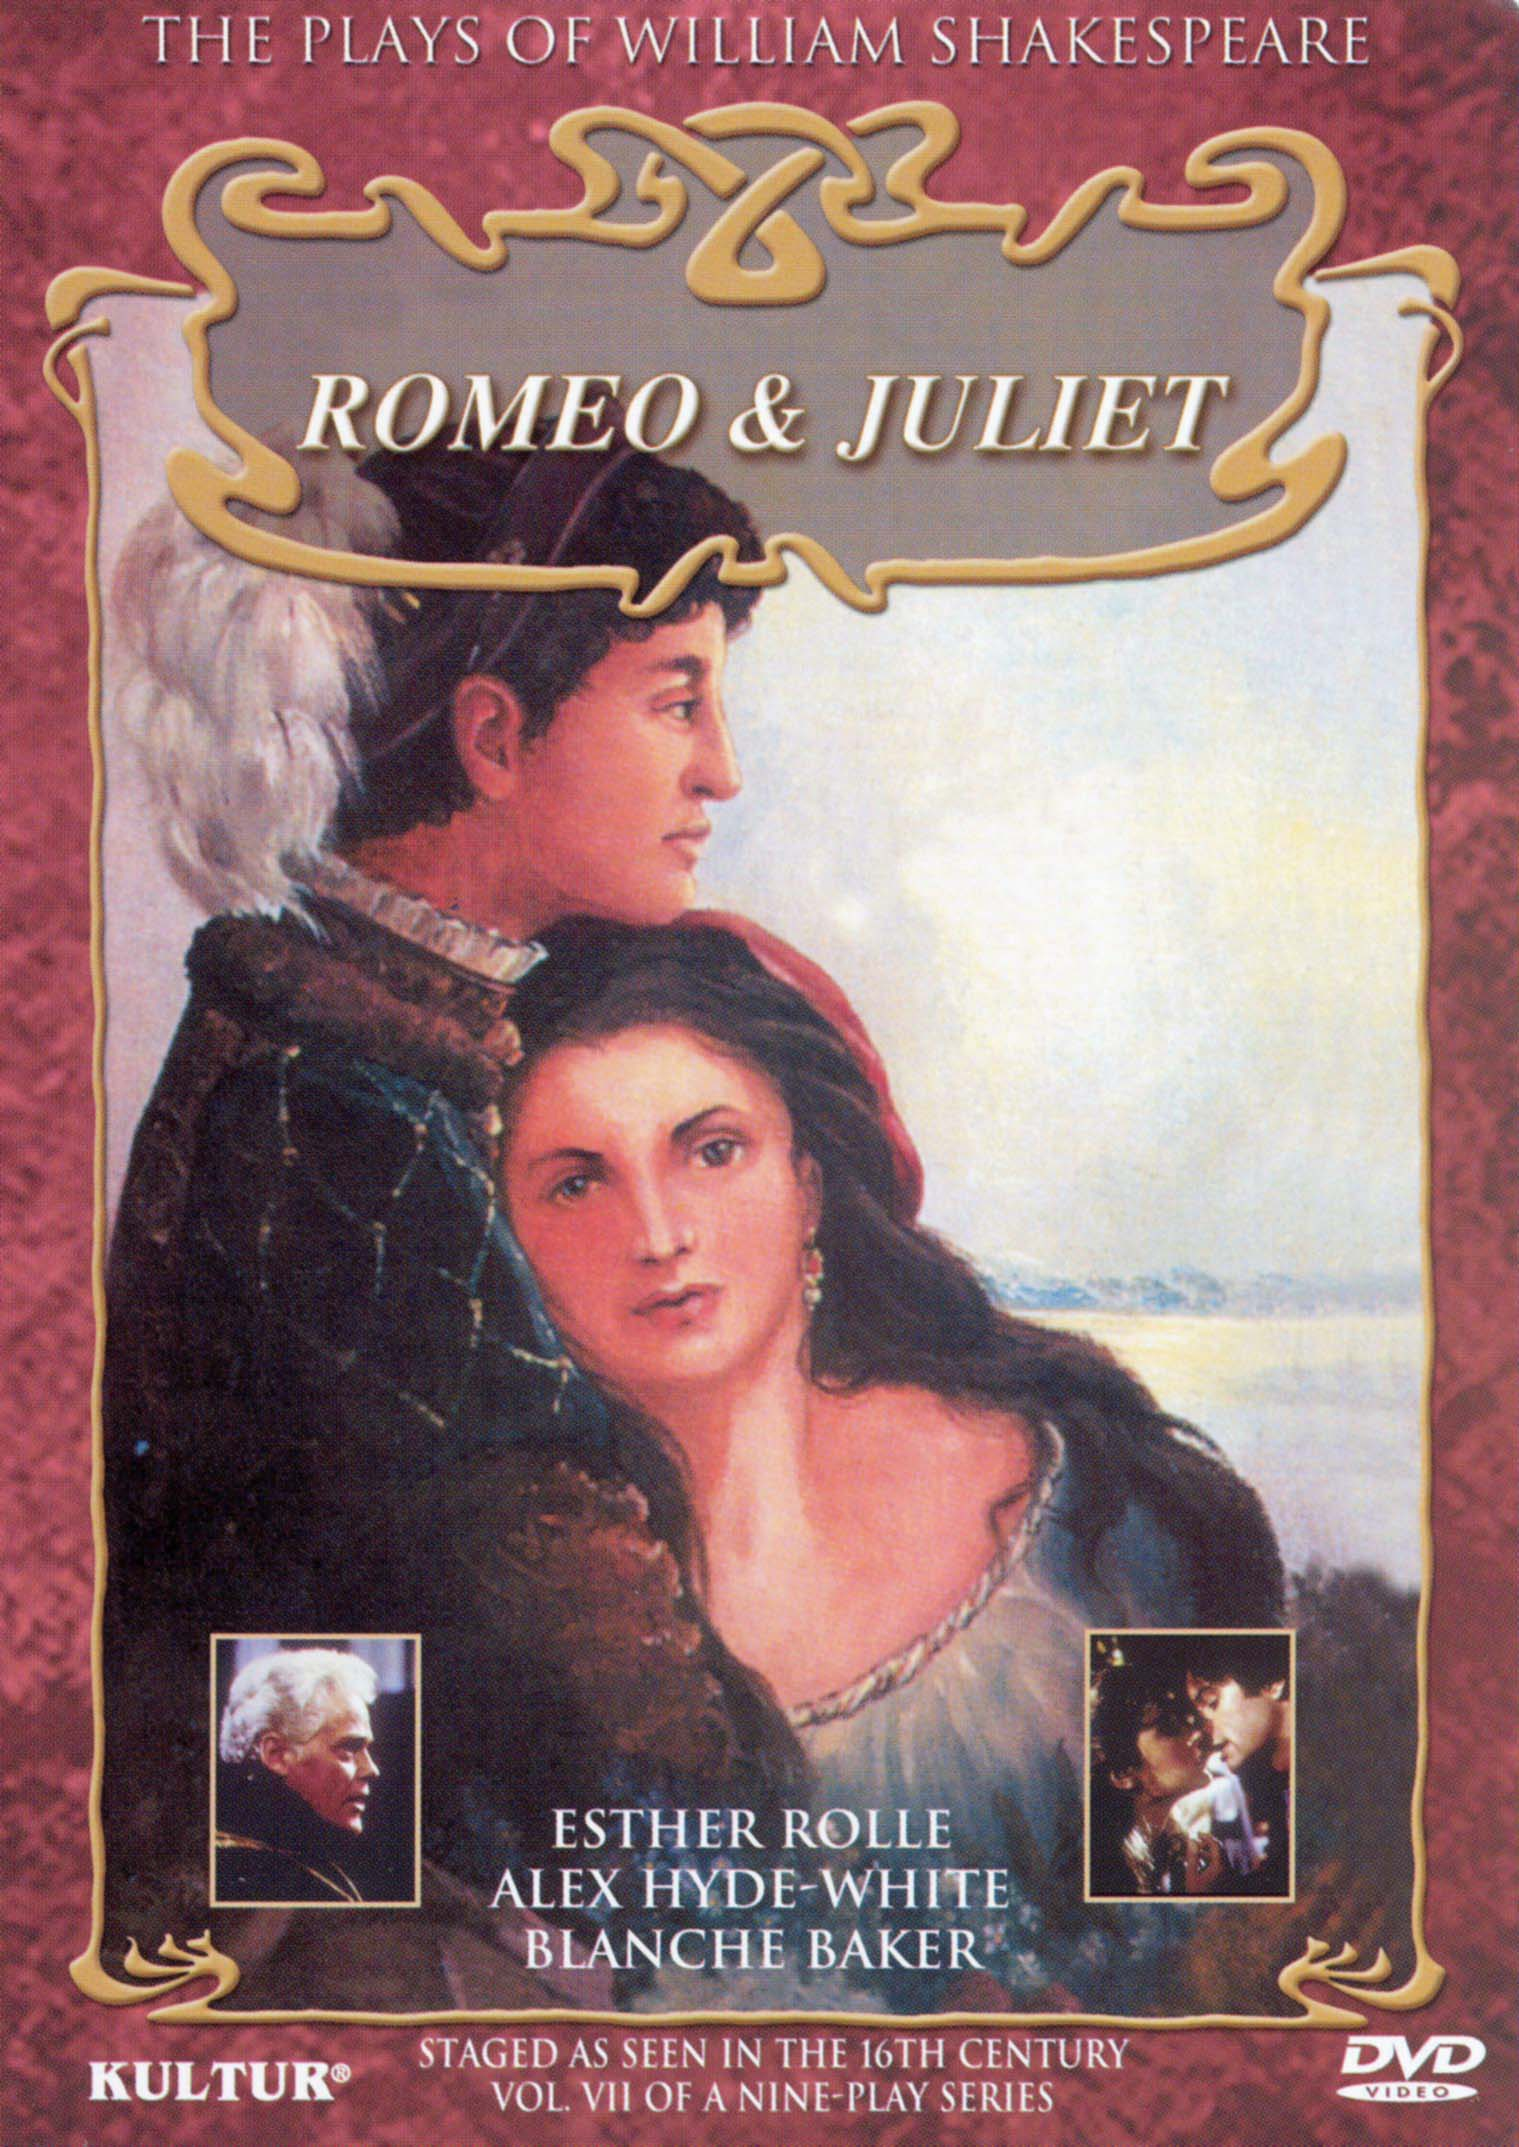 compare romeo and juliet and much ado about nothing William shakespeare png & william shakespeare transparent clipart free download - hamlet william shakespeare much ado about nothing shakespeare: the animated tales clip art - william shakespeare cliparts , william shakespeare hamlet shakespeare's plays macbeth poet - public writer , william shakespeare hamlet macbeth shakespeare's plays much ado about nothing - william shakespeare.